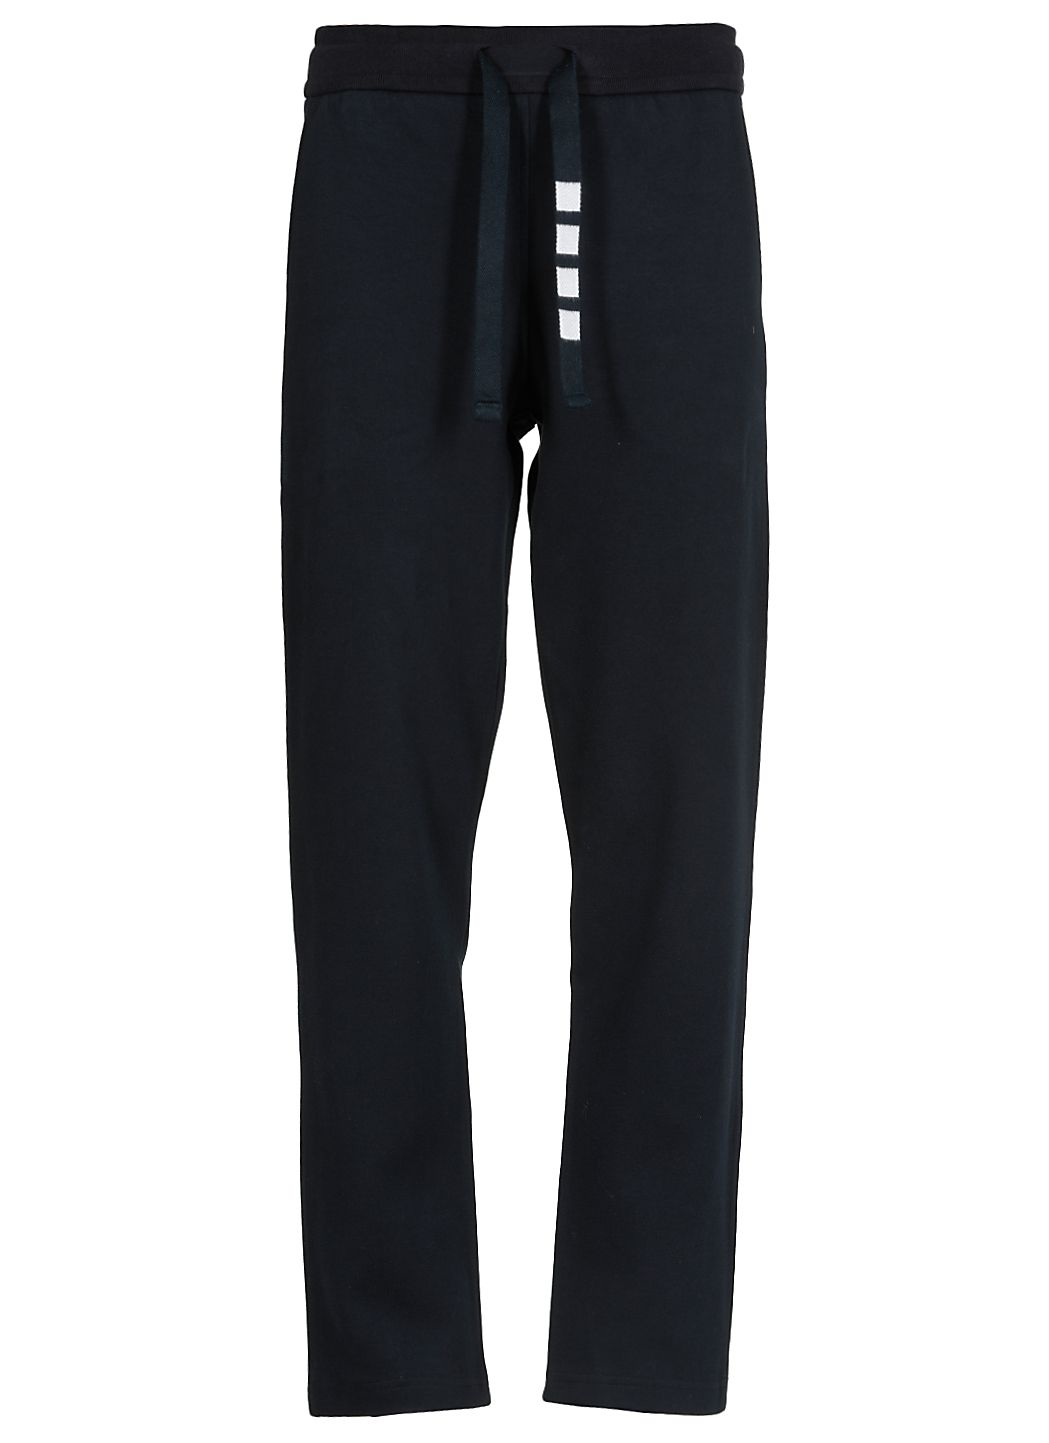 Straight leg sweatpants in double knit cotton